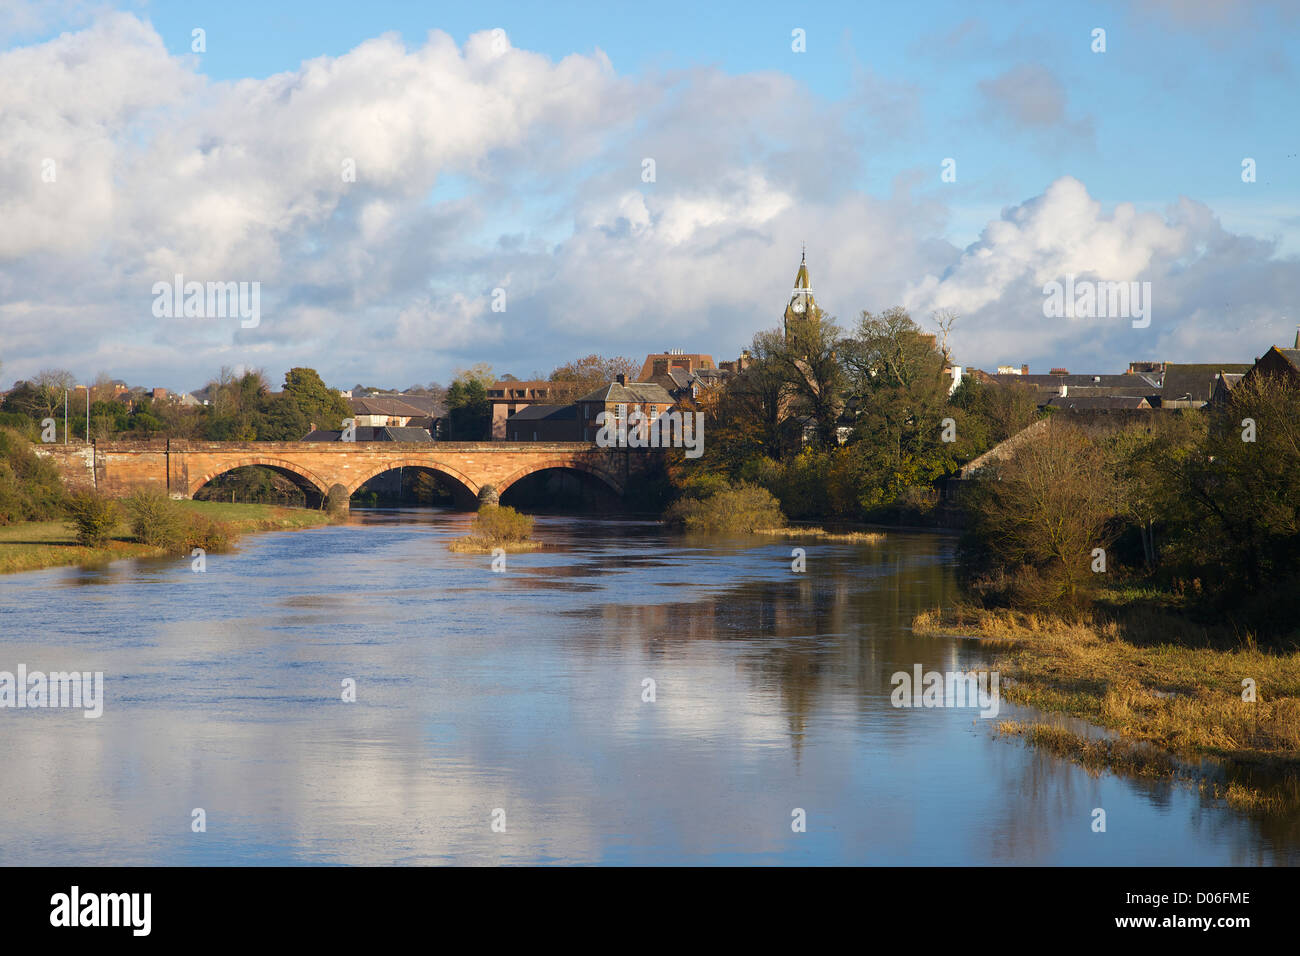 River Annan spanned by Annan Road Bridge Dumfries and Galloway in Scotland - Stock Image